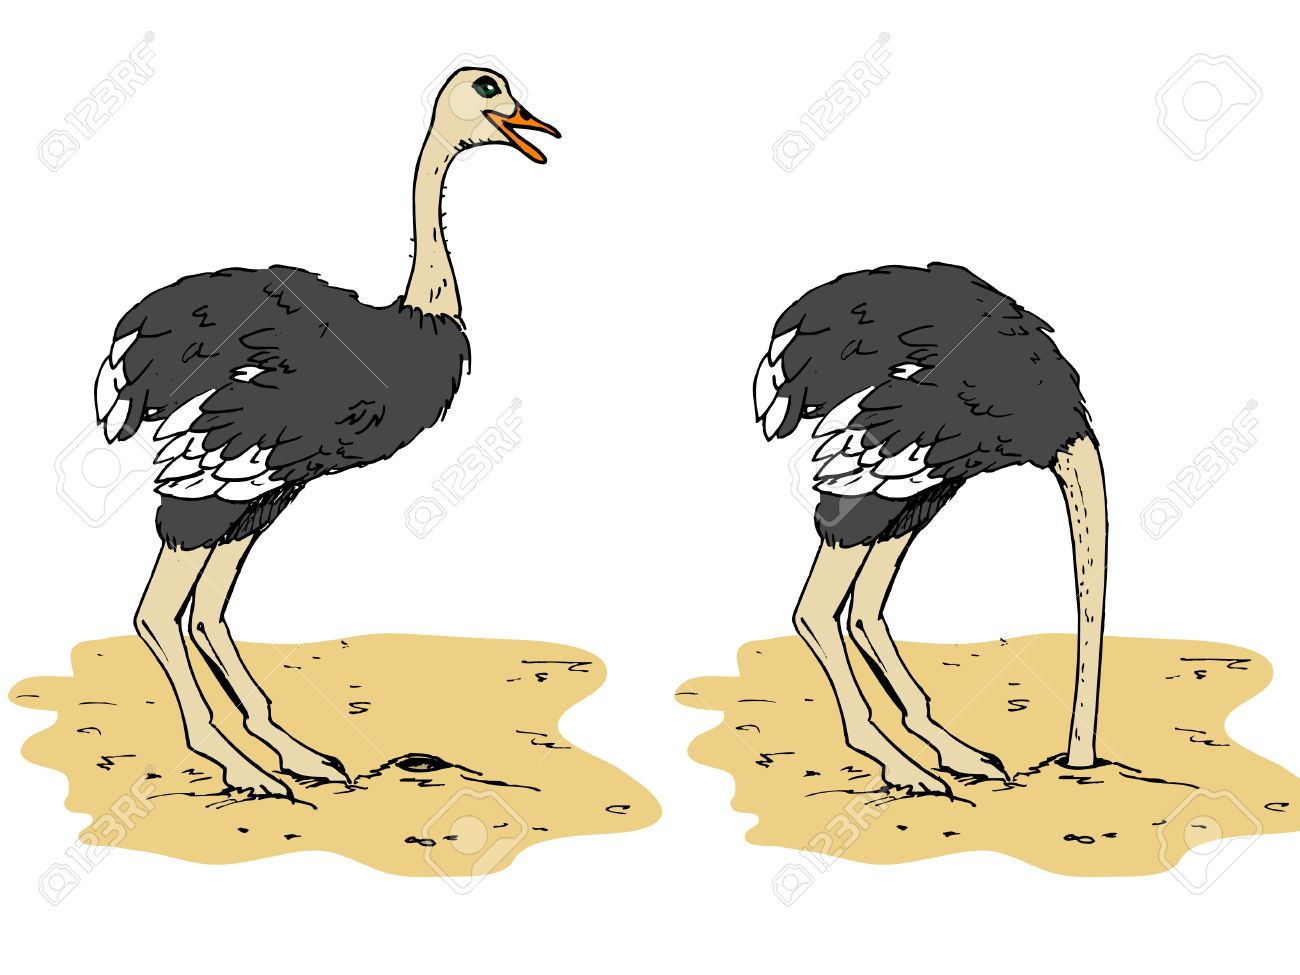 Cartoon ostrich with head below sand. Isolated on white.